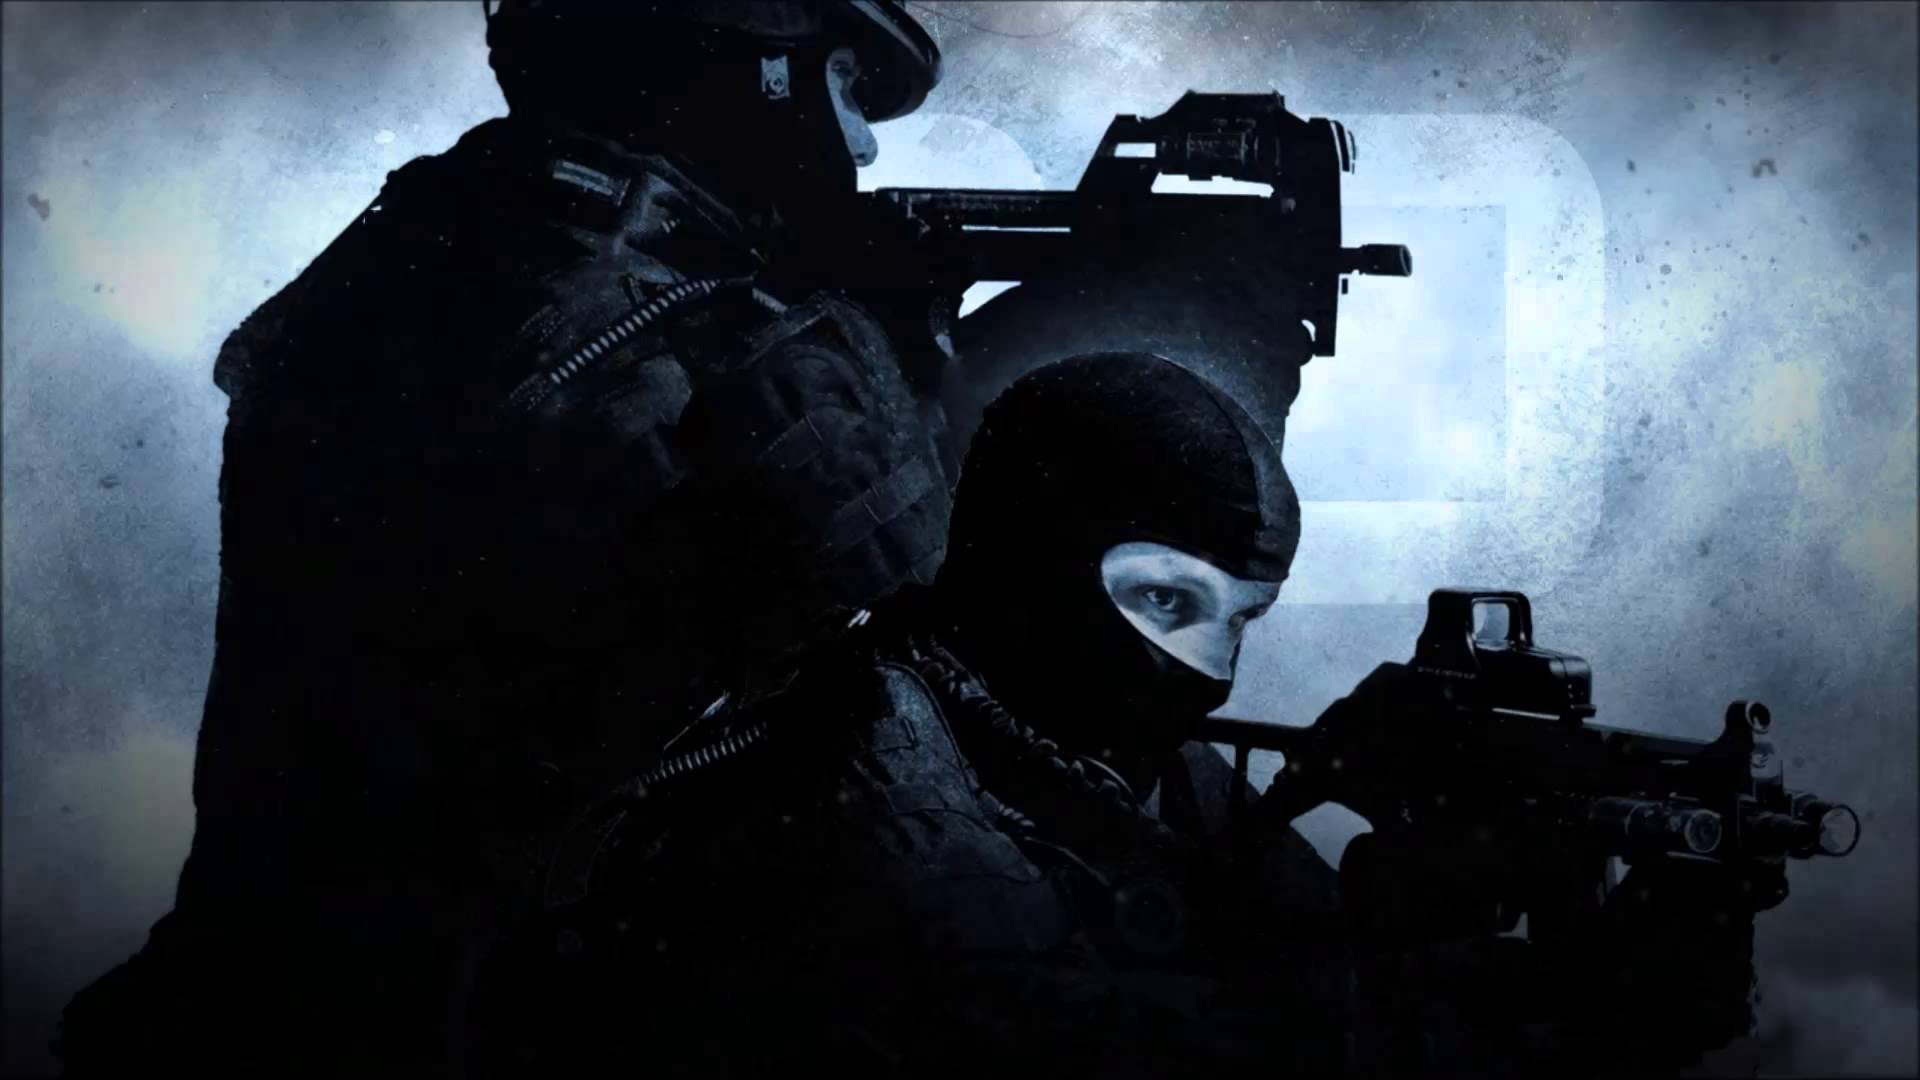 Counter Strike Global Offensive Wallpapers Hd 1080p Wallpaper Cave